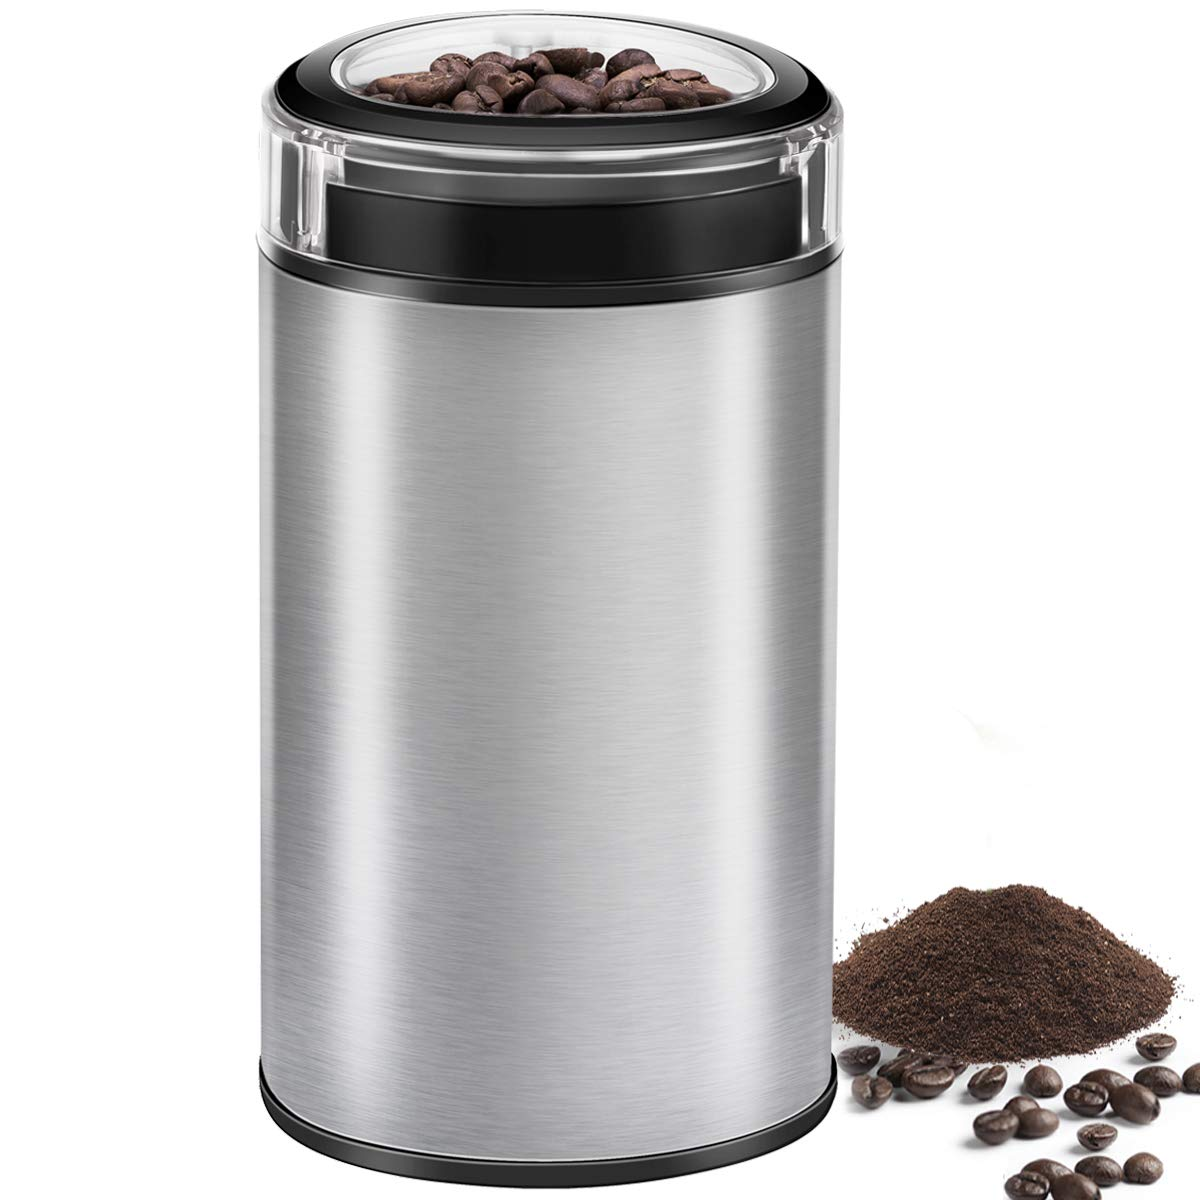 Coffee Grinder Electric Spice Grinder, CUSINAID Stainless Steel Blades Grinder for Coffee Bean Seed Nut Spice Herb Pepper, Transparent Lid with 50g Big Capacity